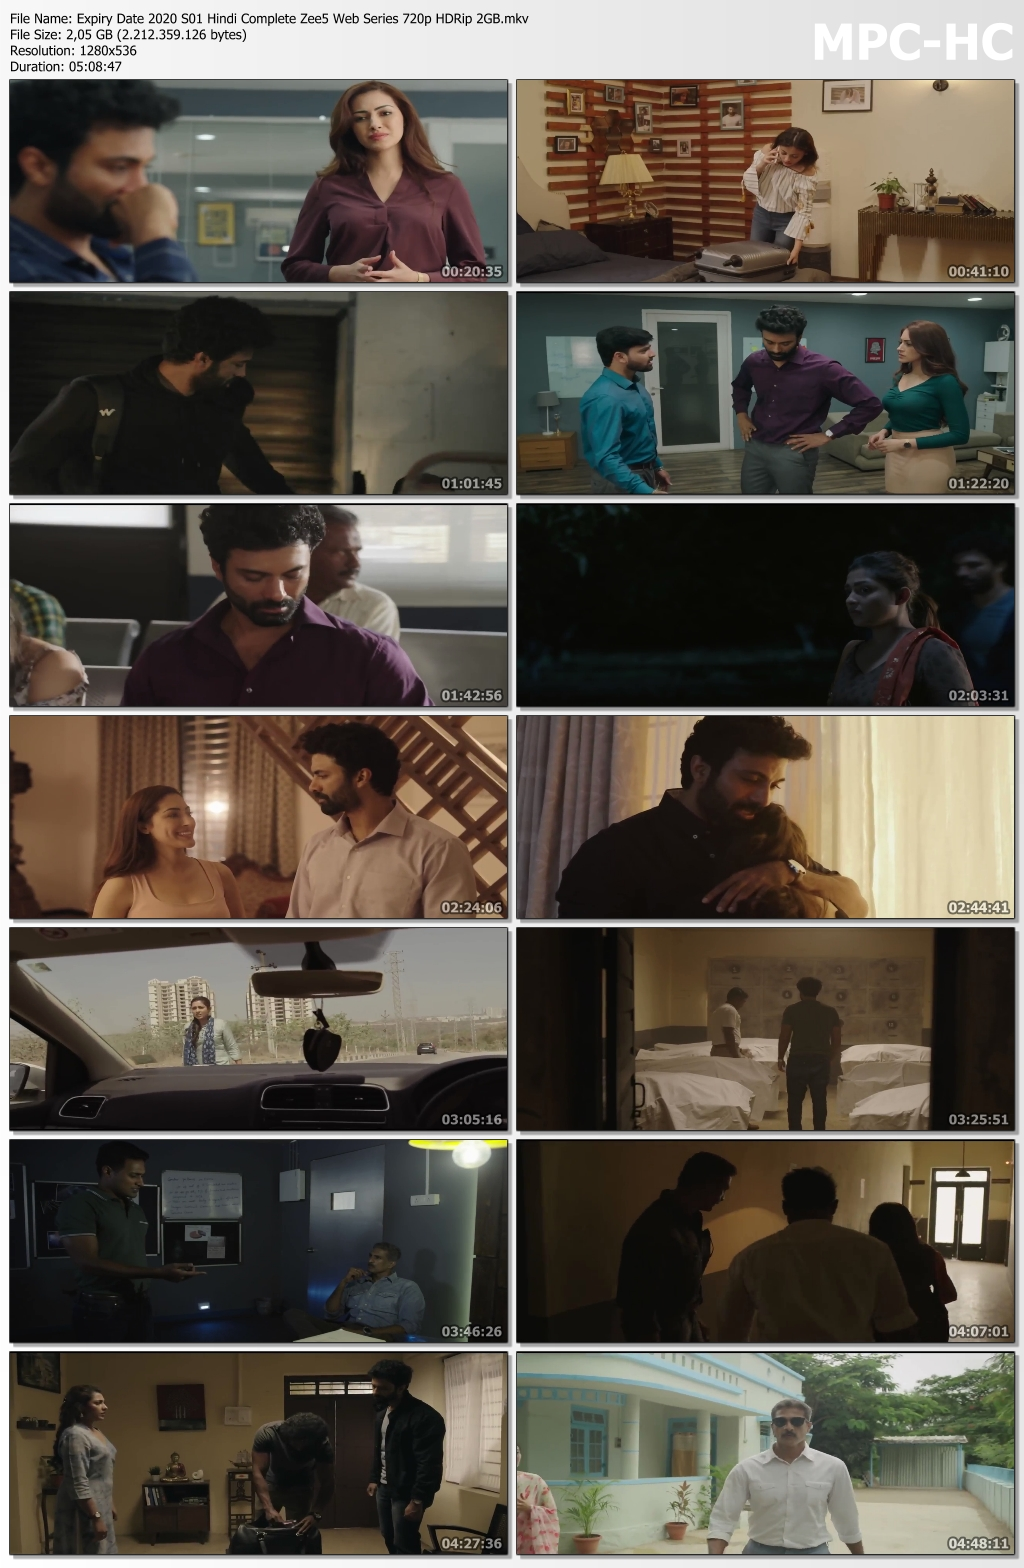 Expiry-Date-2020-S01-Hindi-Complete-Zee5-Web-Series-720p-HDRip-2-GB-mkv-thumbs